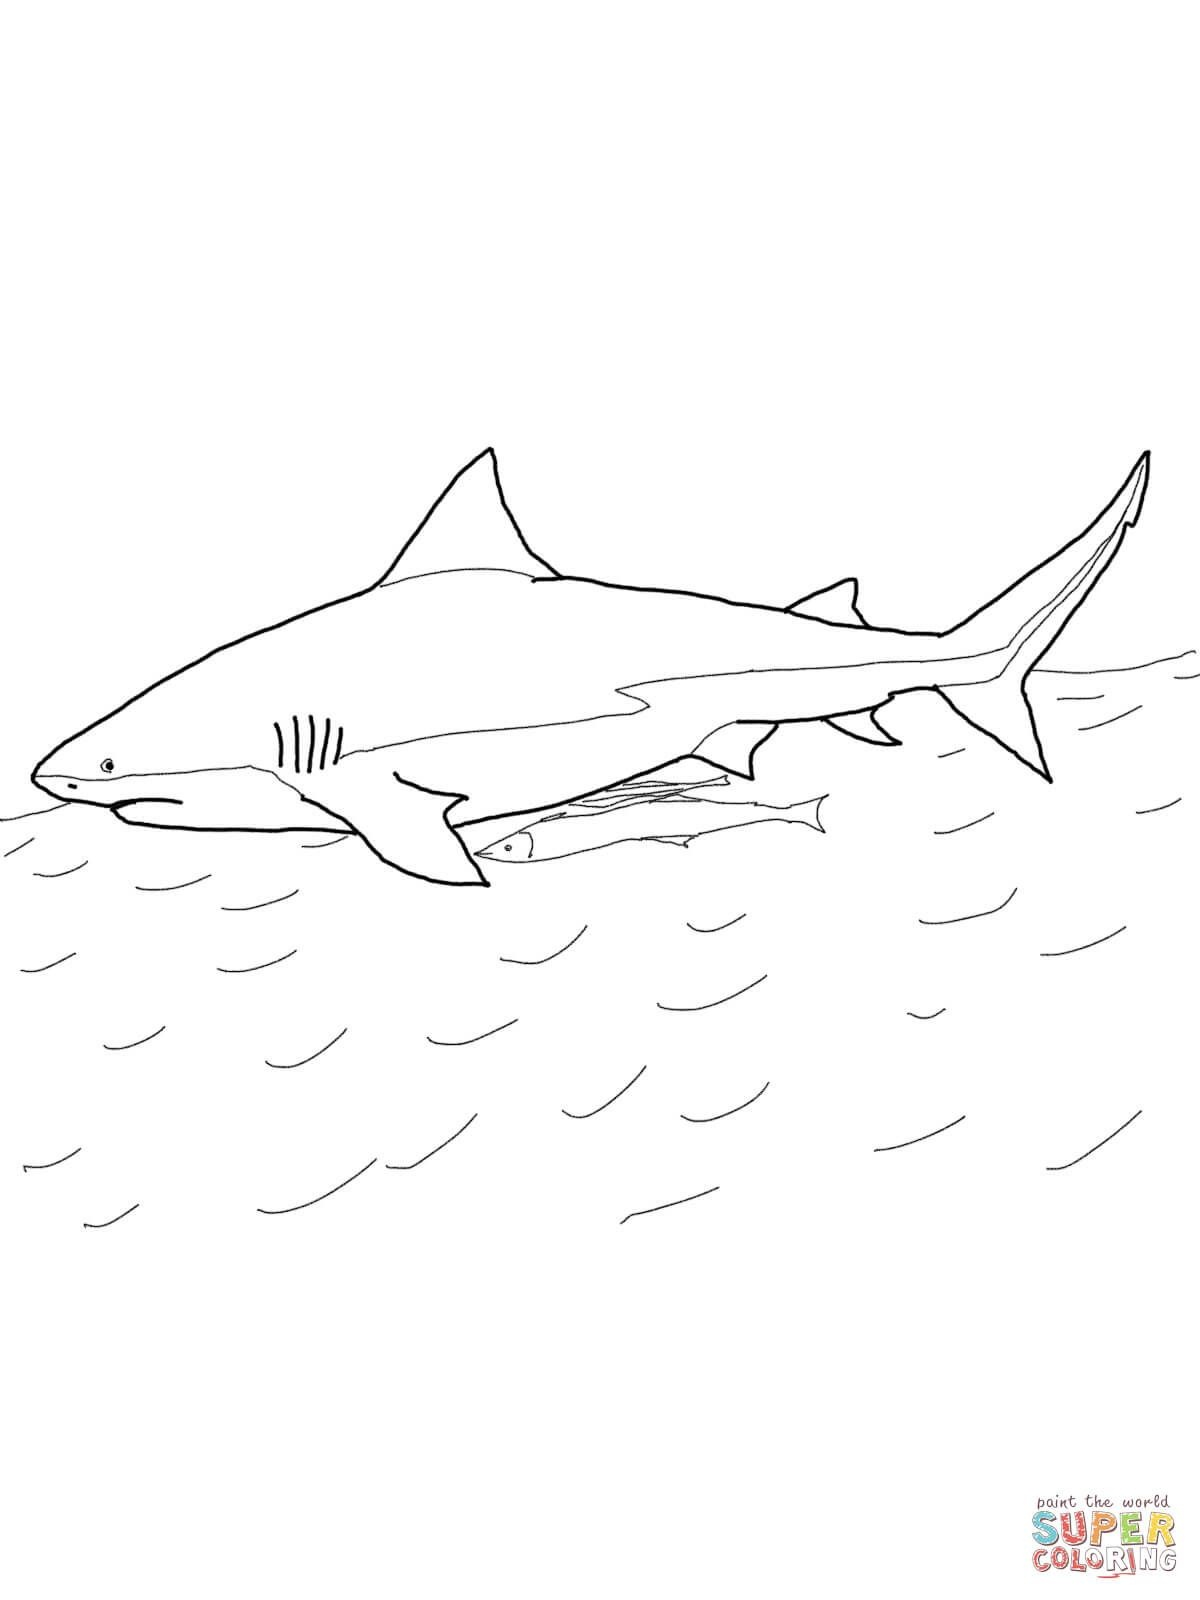 Sharks Coloring Pages Free Coloring Pages | Shark Coloring Pages - Free Printable Shark Coloring Pages